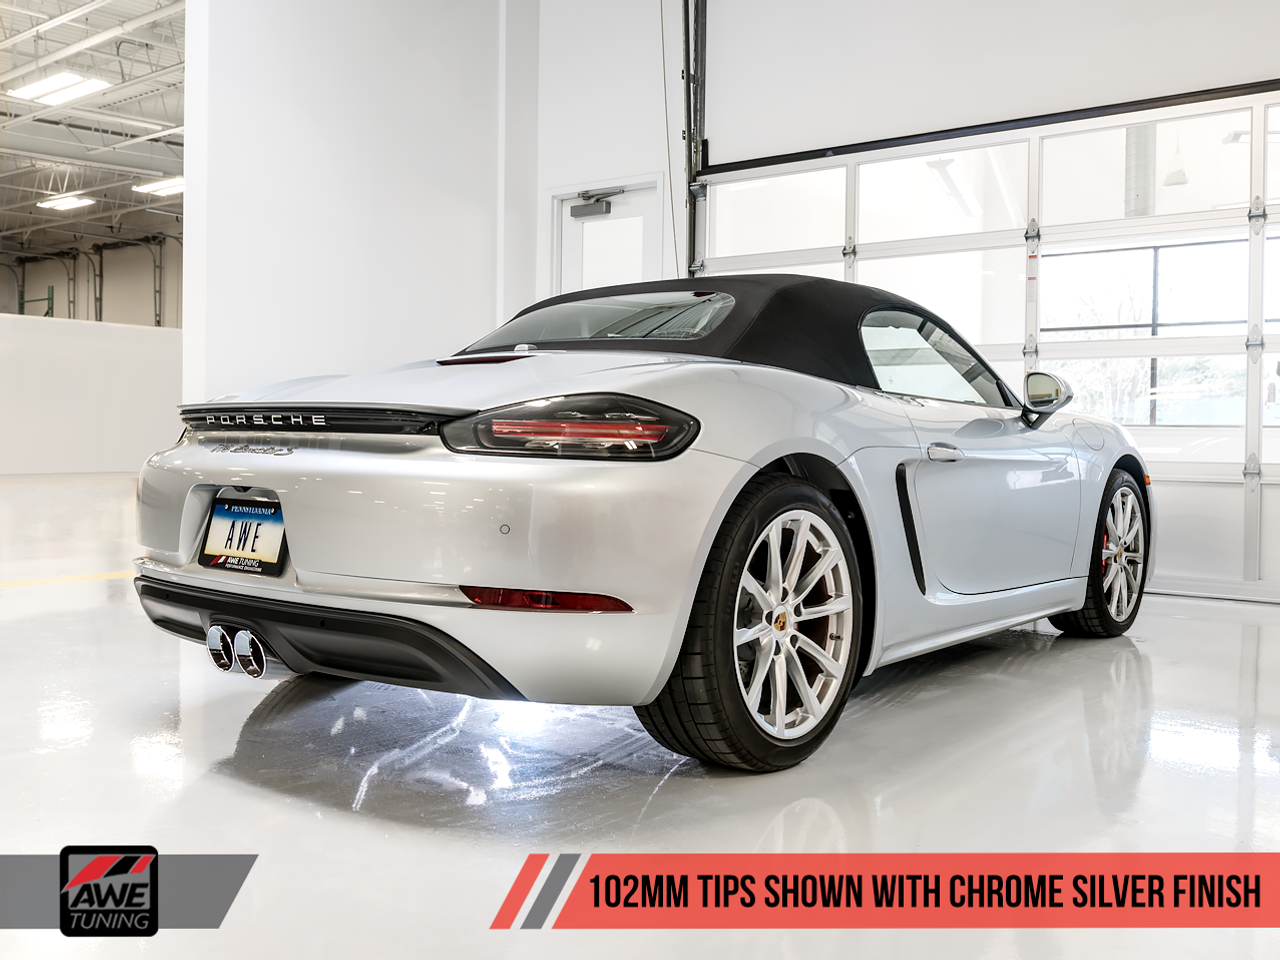 Porsche 718 Boxster & Cayman Touring Edition Exhaust - Chrome Silver Tailpipes